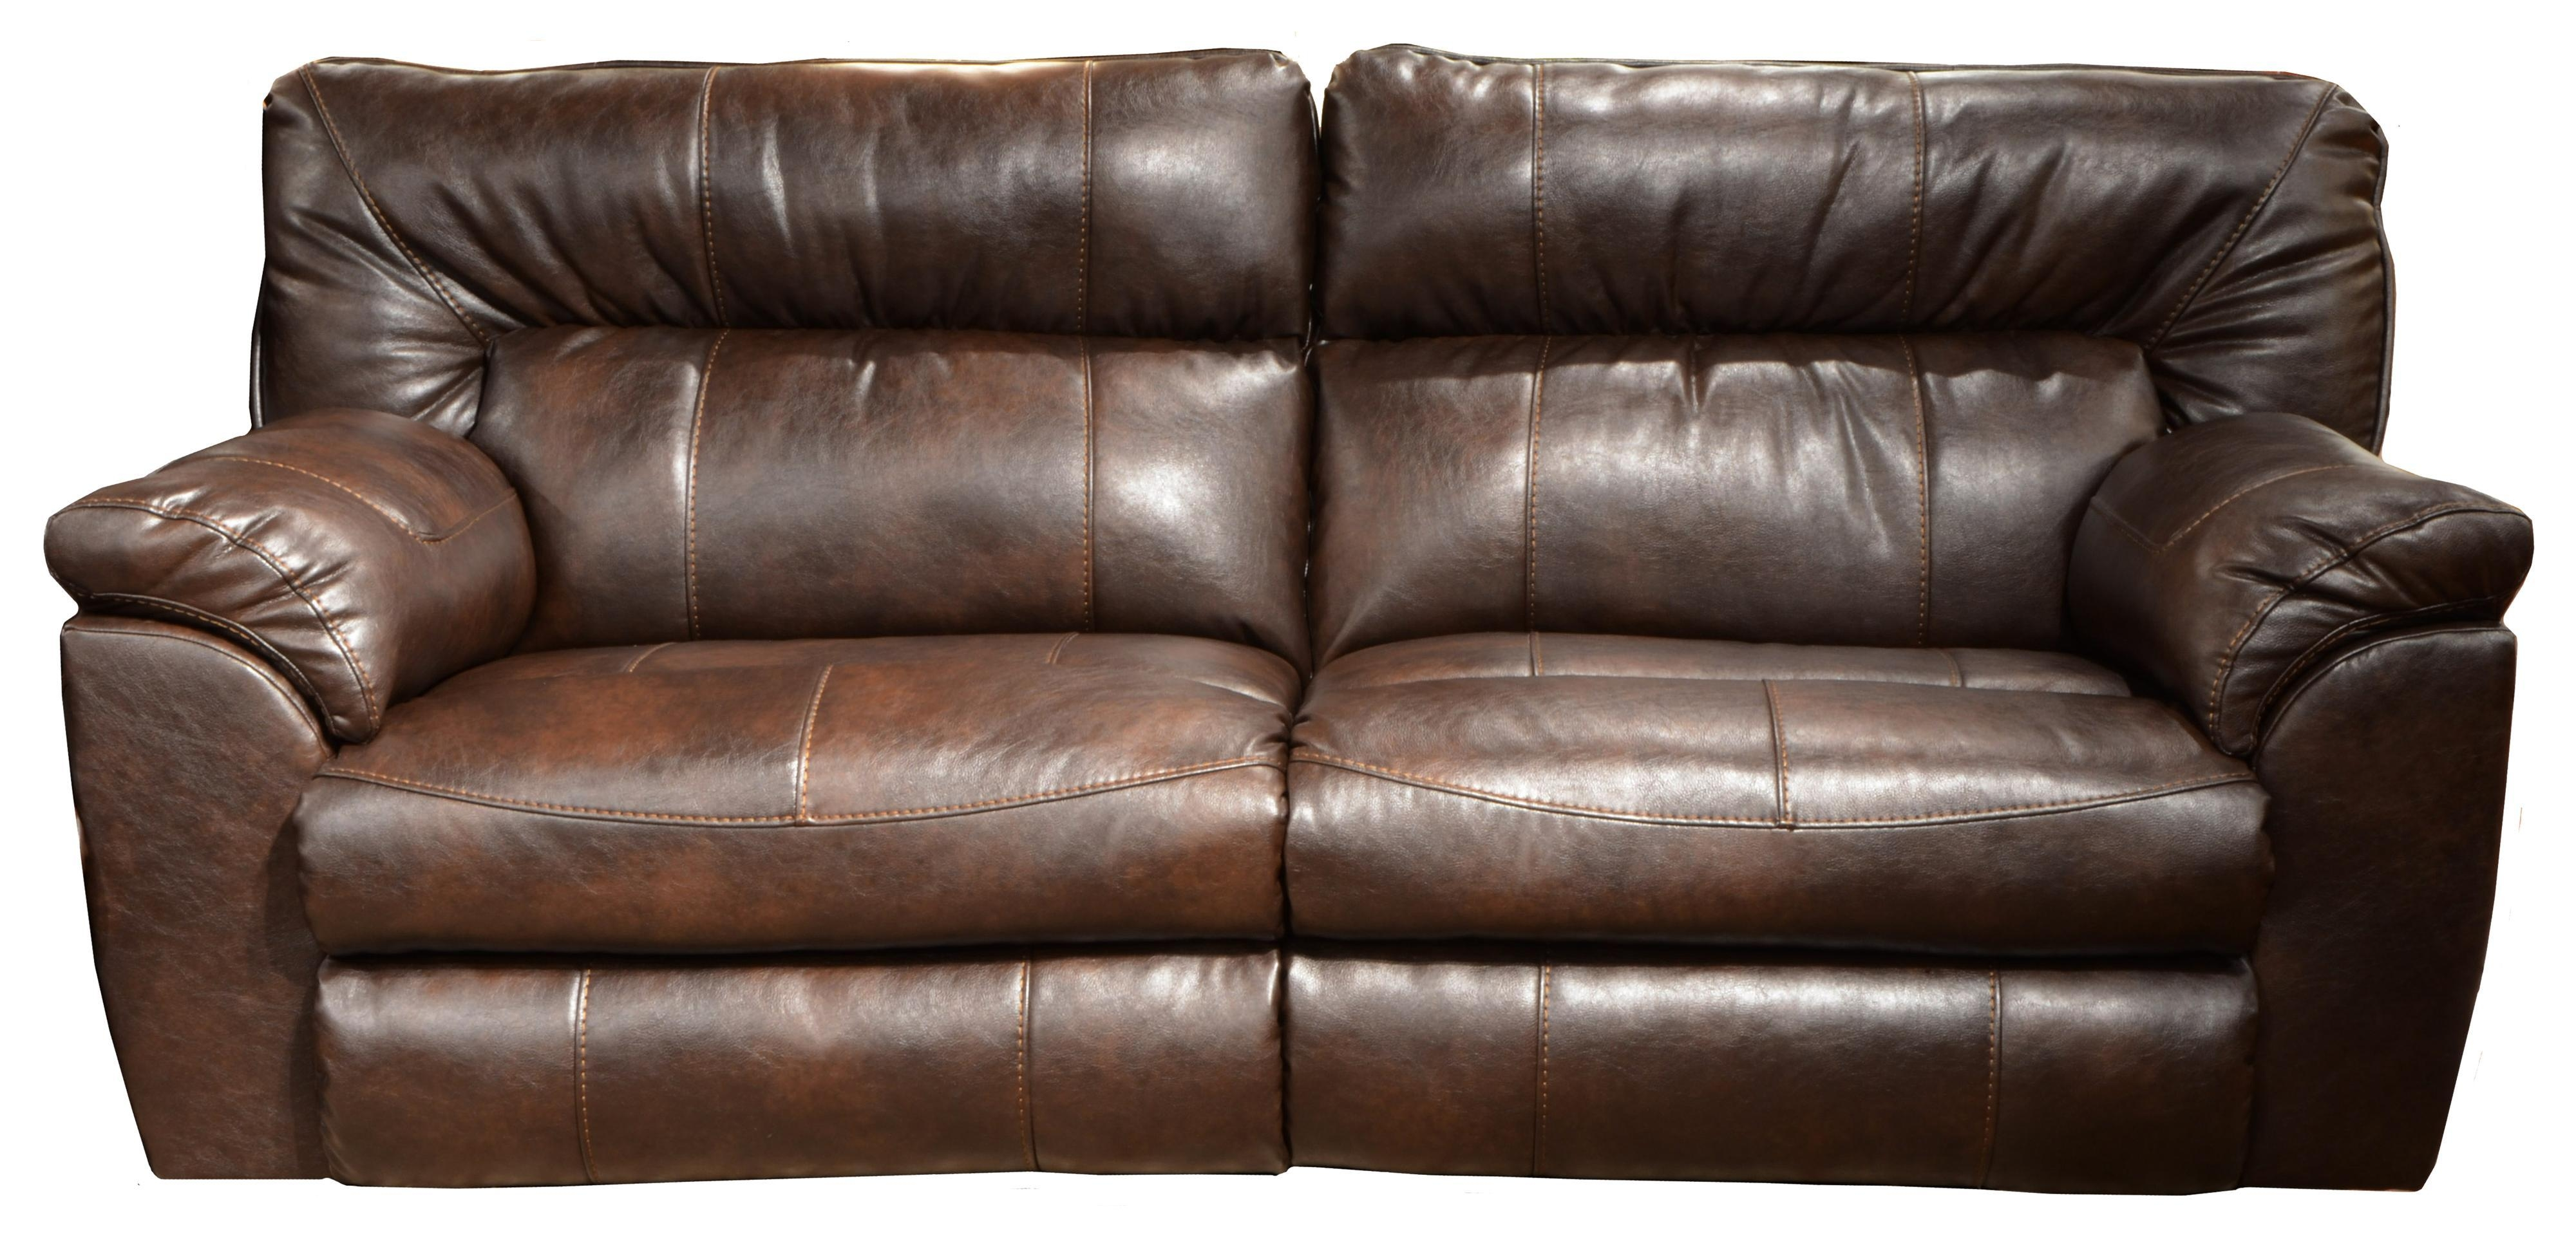 Leather Couch Ideas 20 Best Bonded Leather Sofas Sofa Ideas